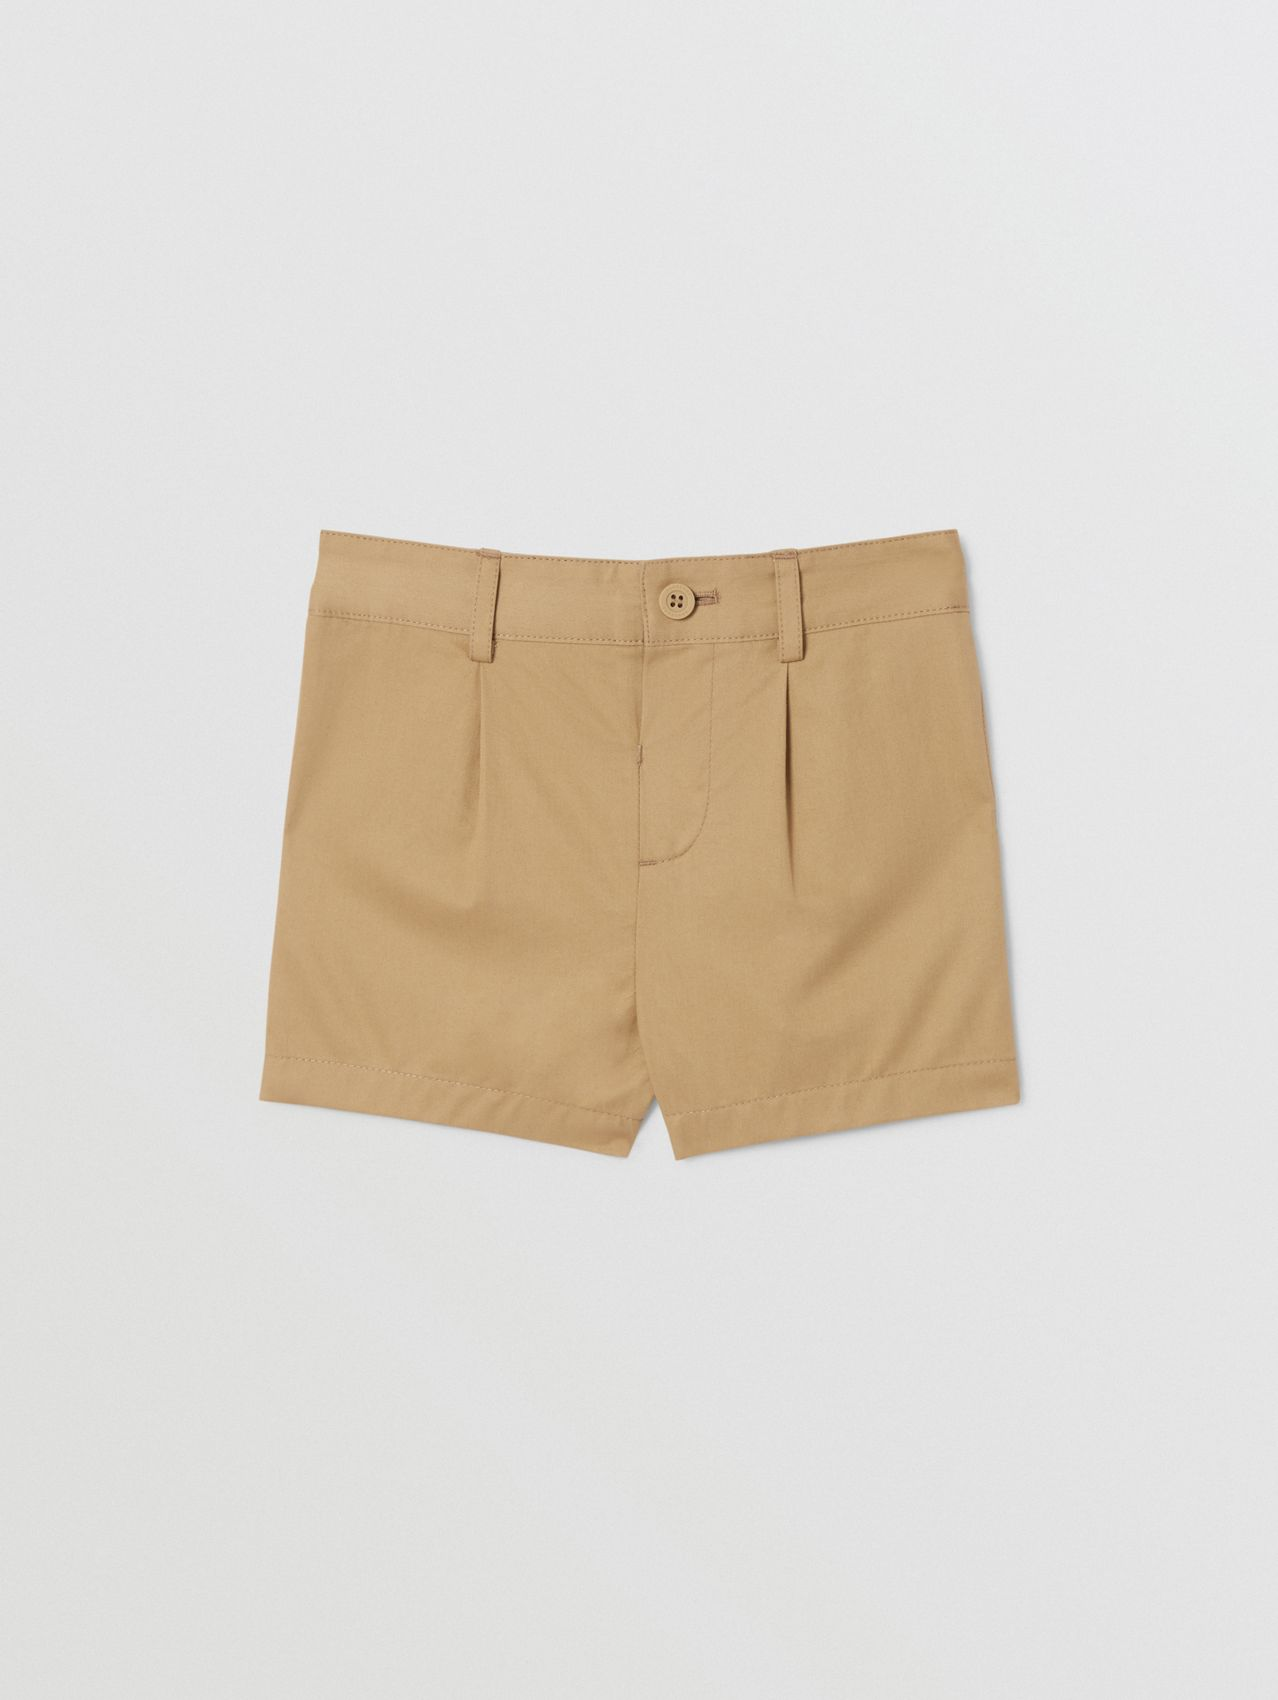 Logo Appliqué Cotton Twill Tailored Shorts in Archive Beige